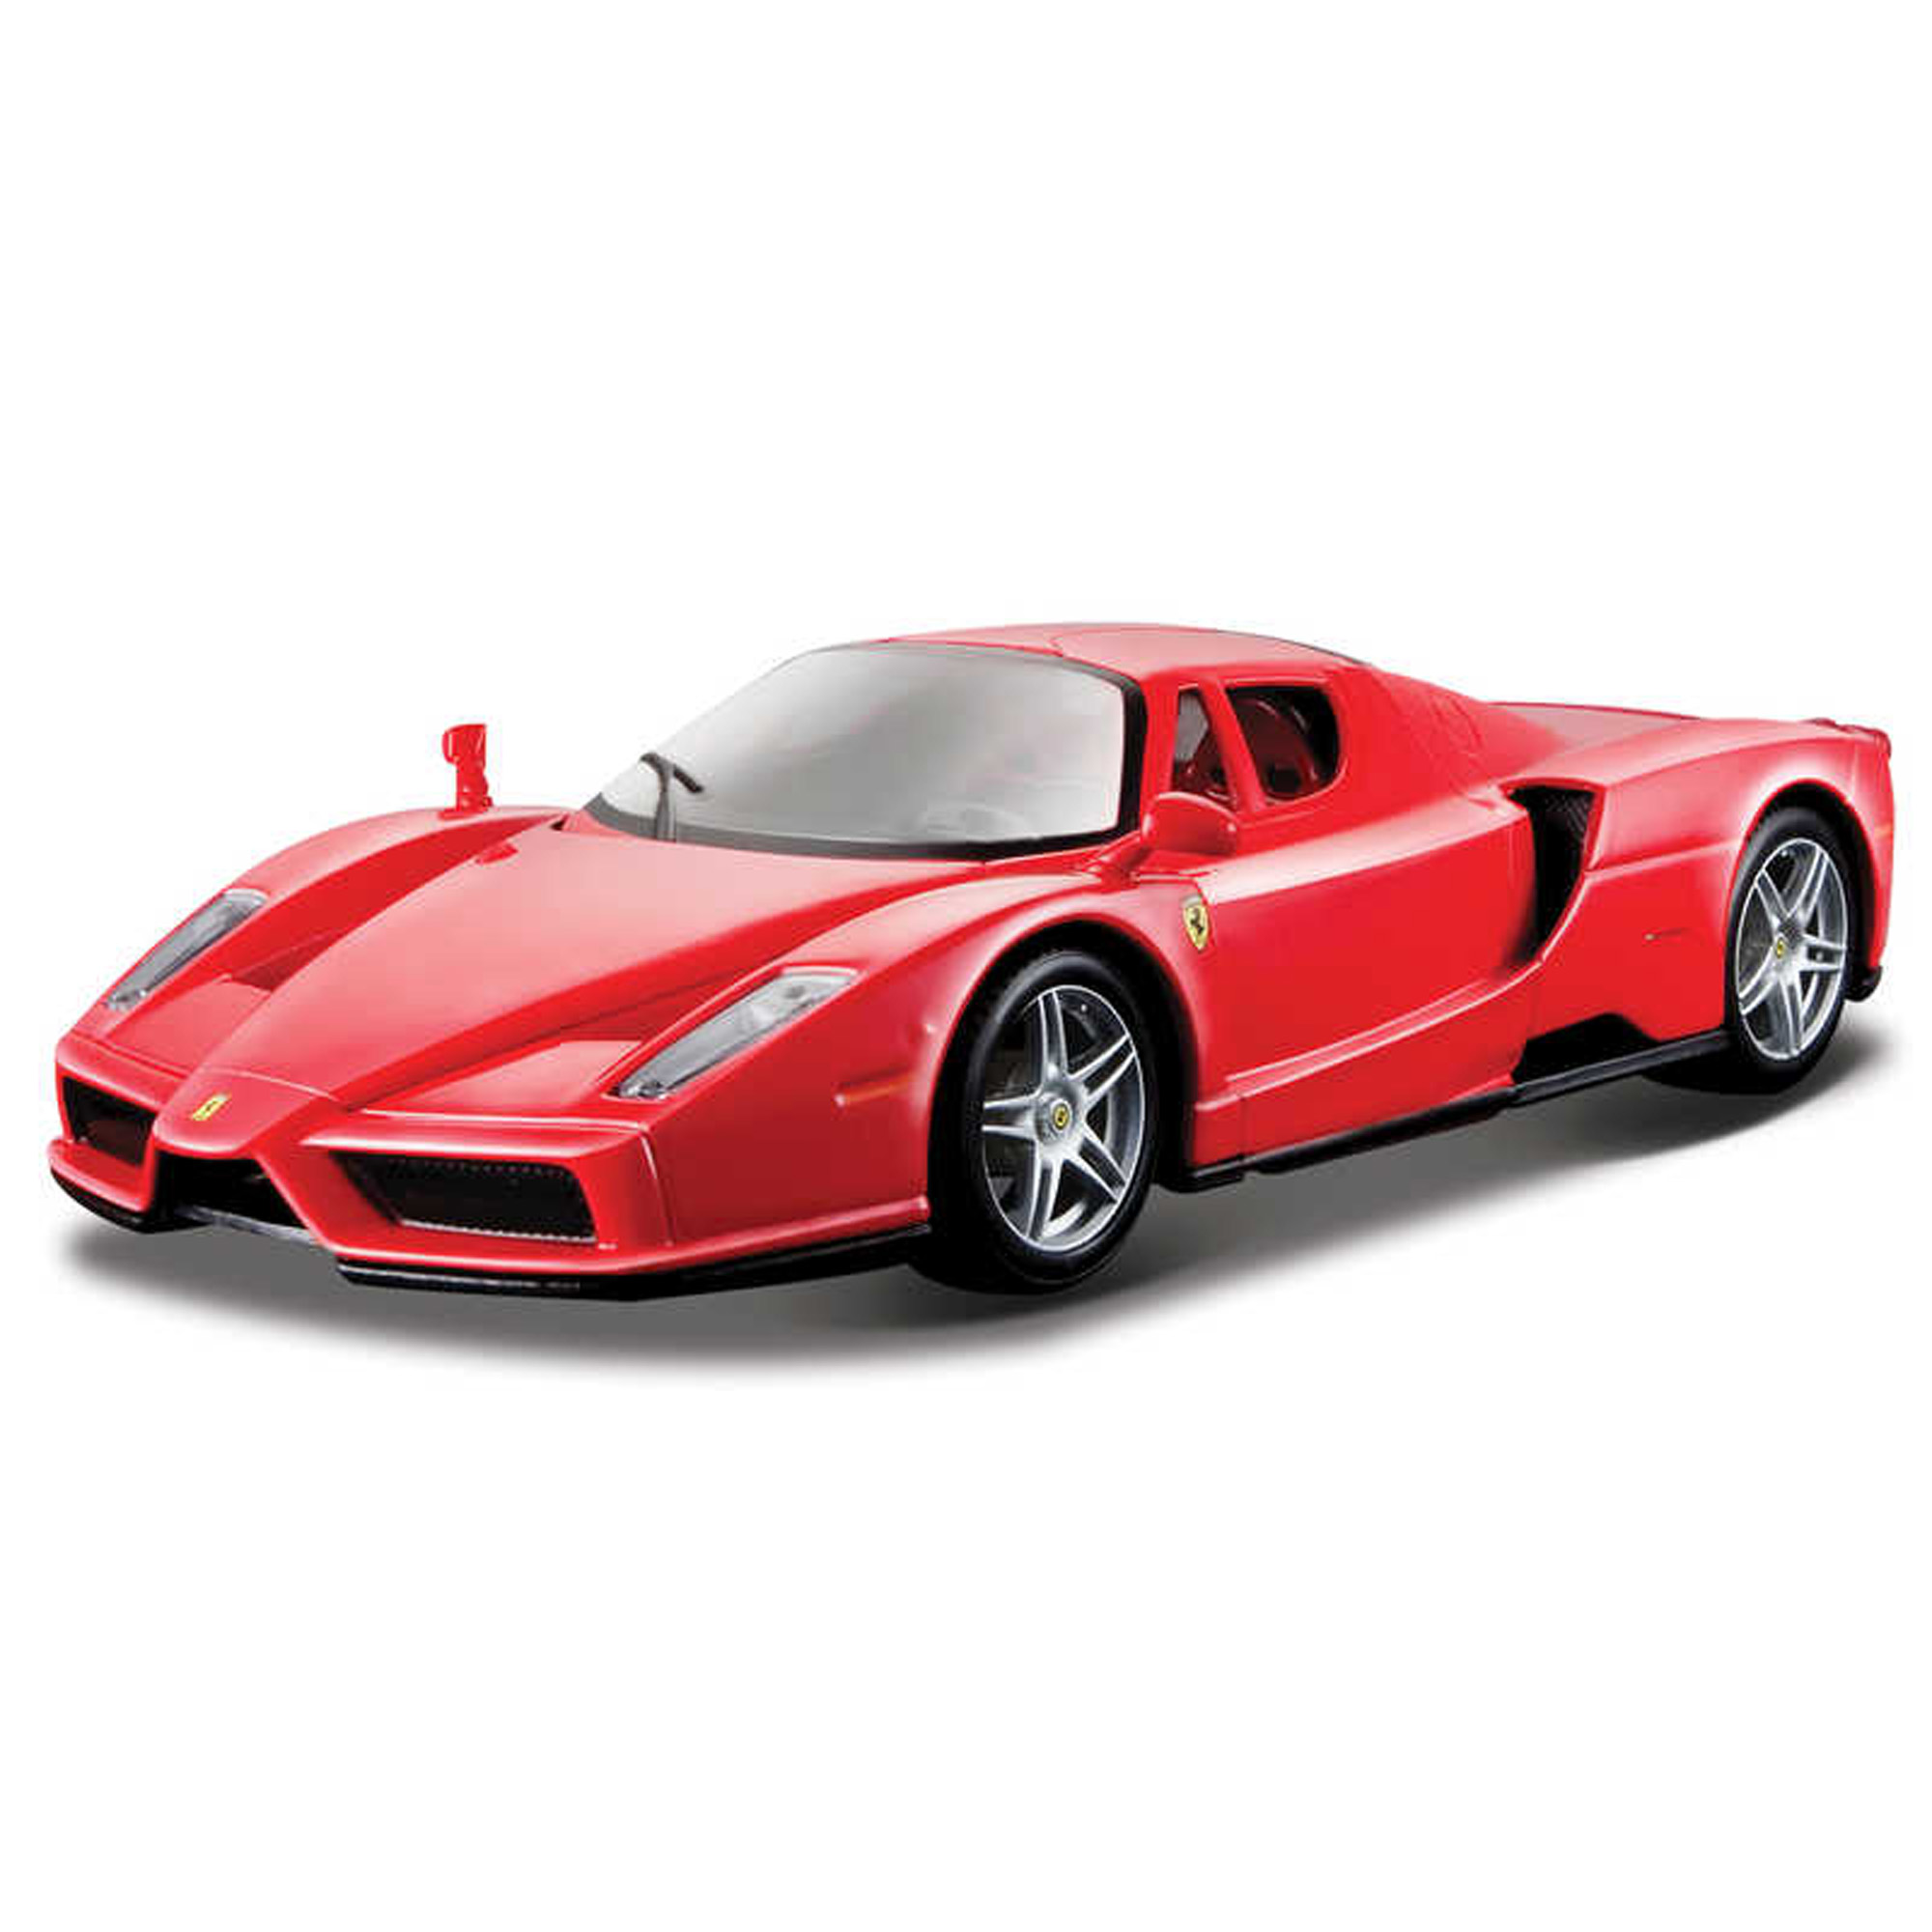 Tobar Enzo Ferrari 1:24 Scale Diecast Model